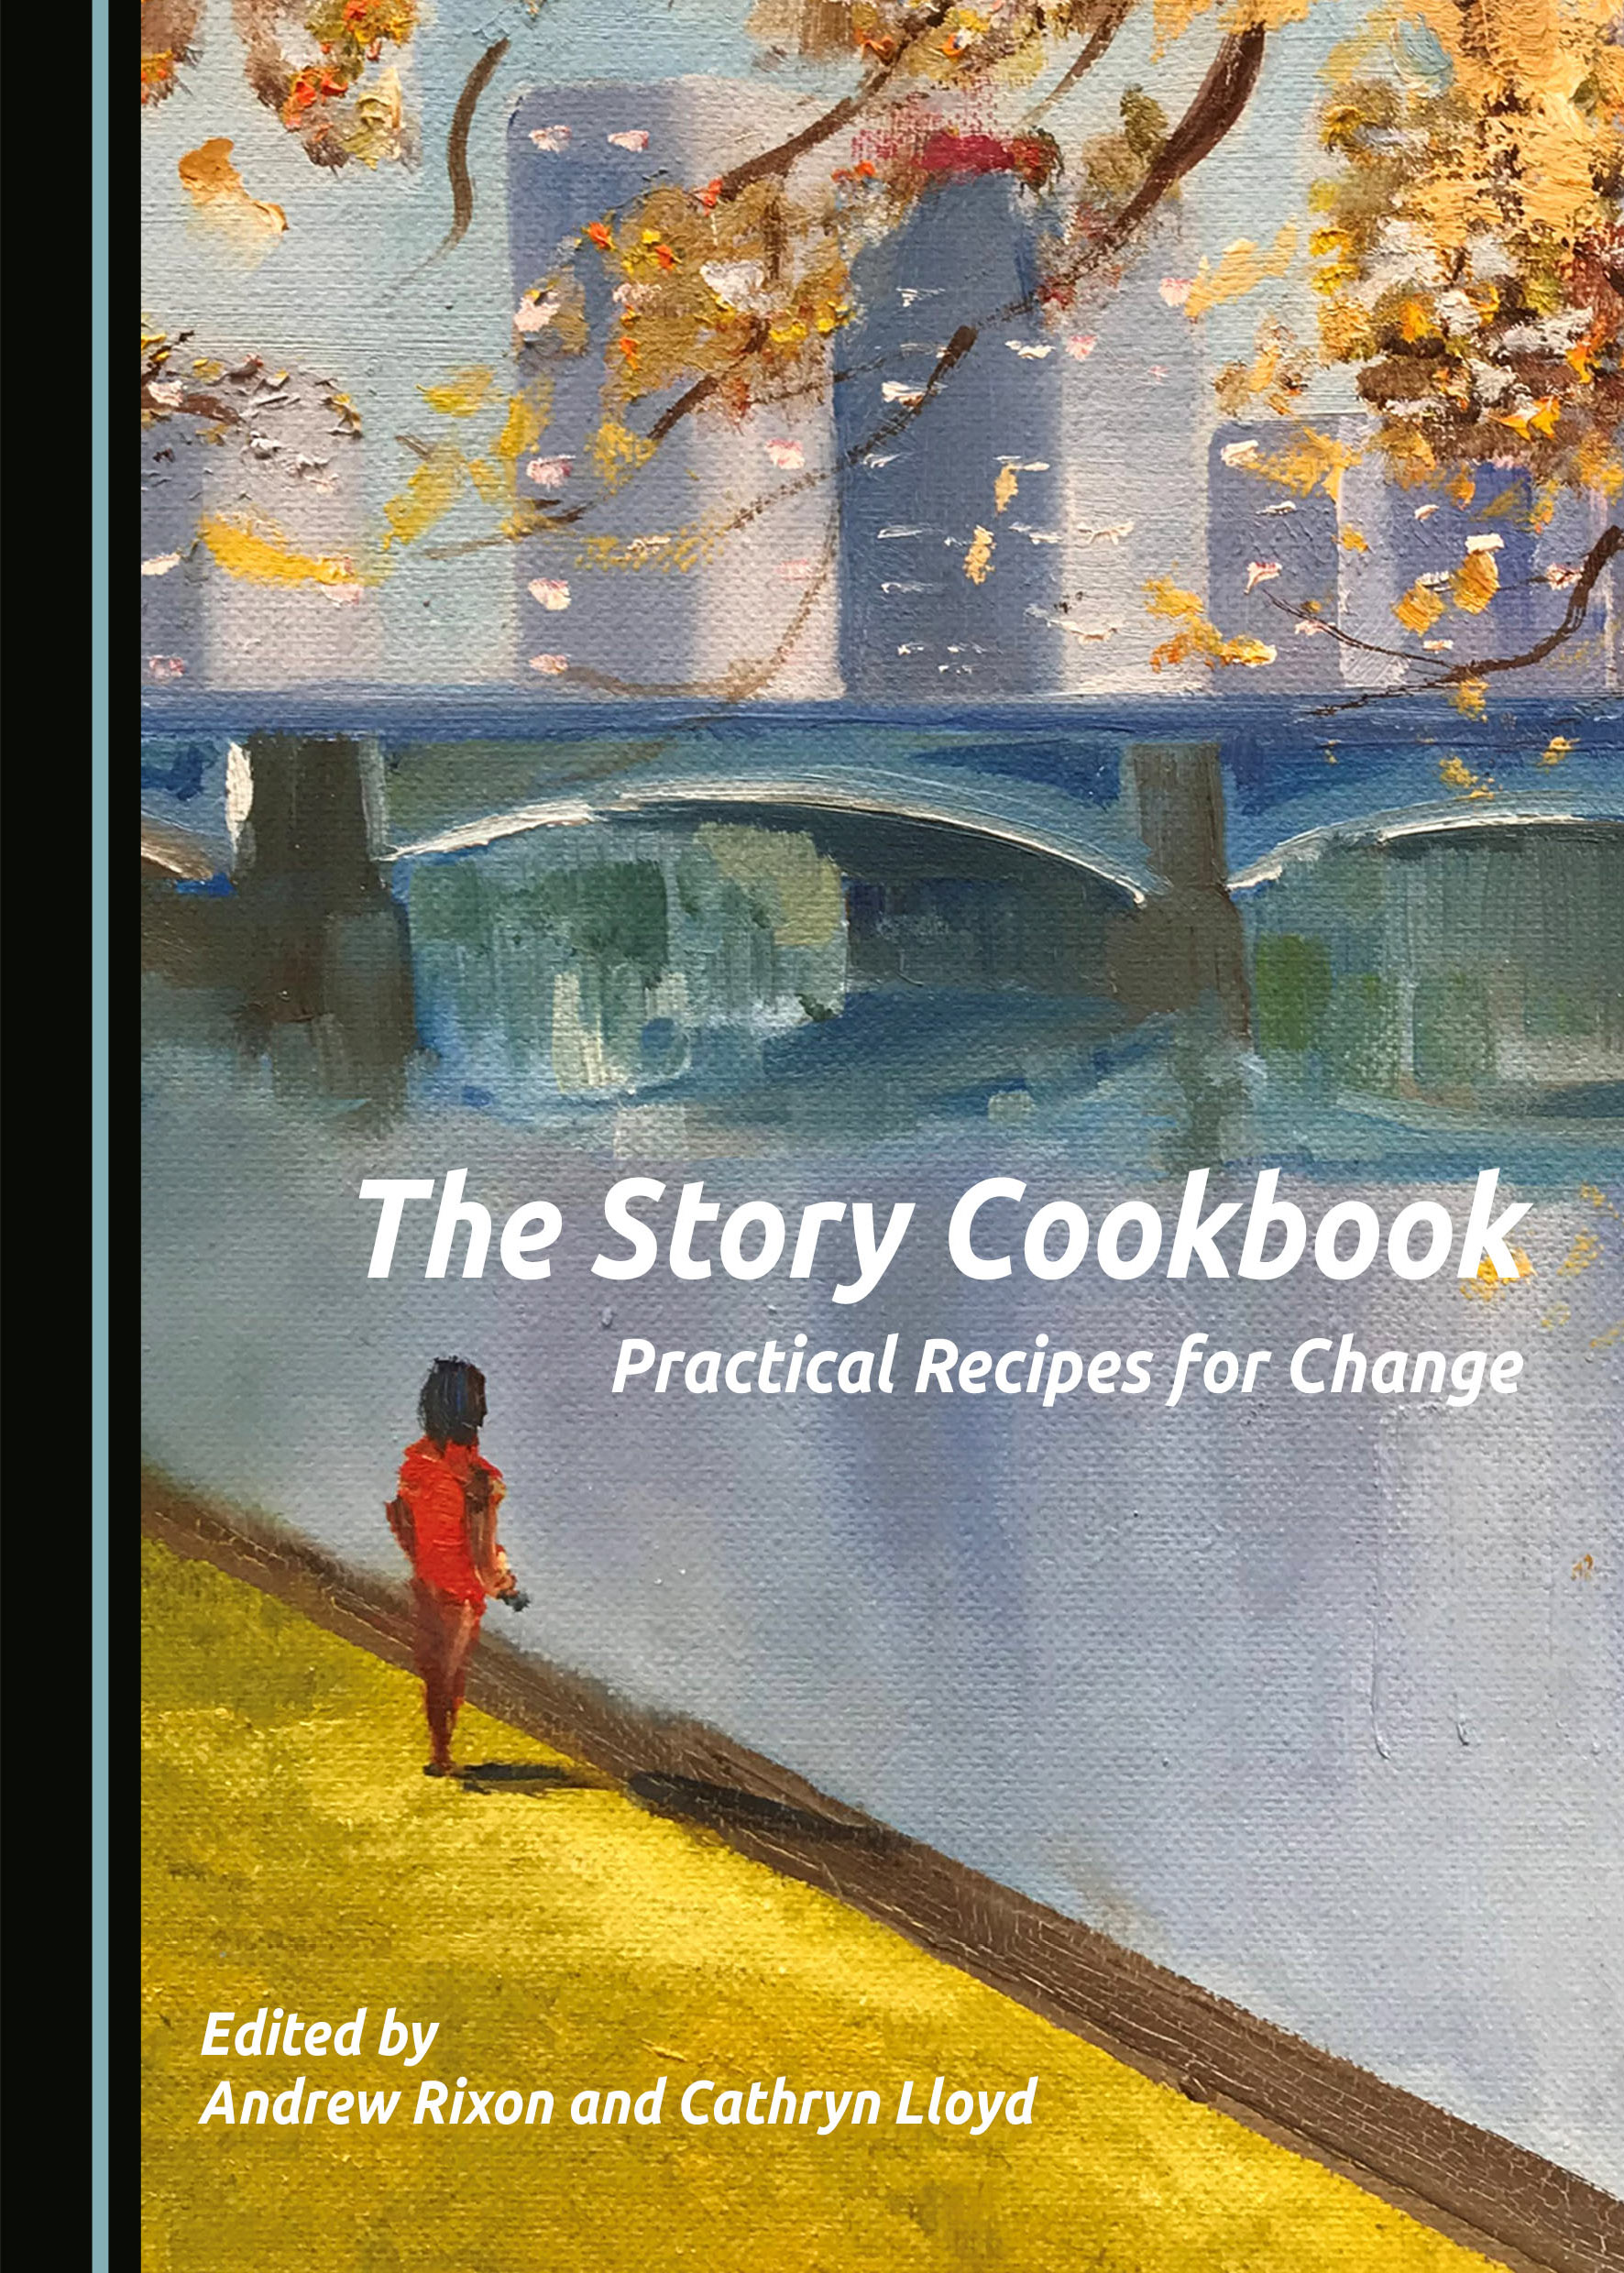 The Story Cookbook: Practical Recipes for Change